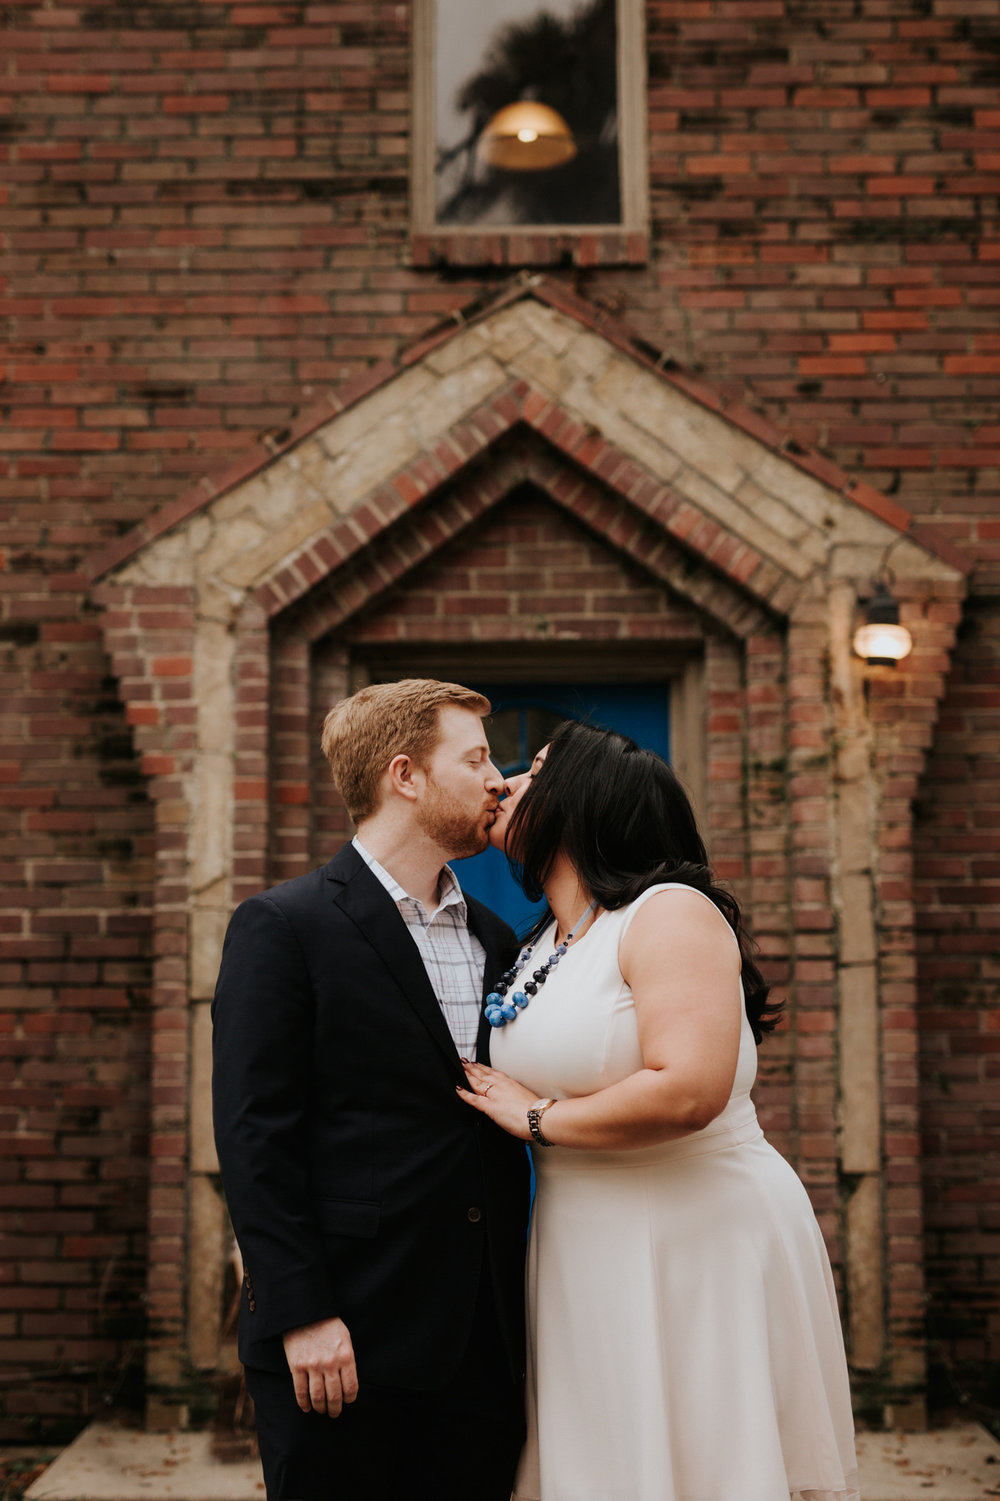 Engaged couple kissing in front of brick building